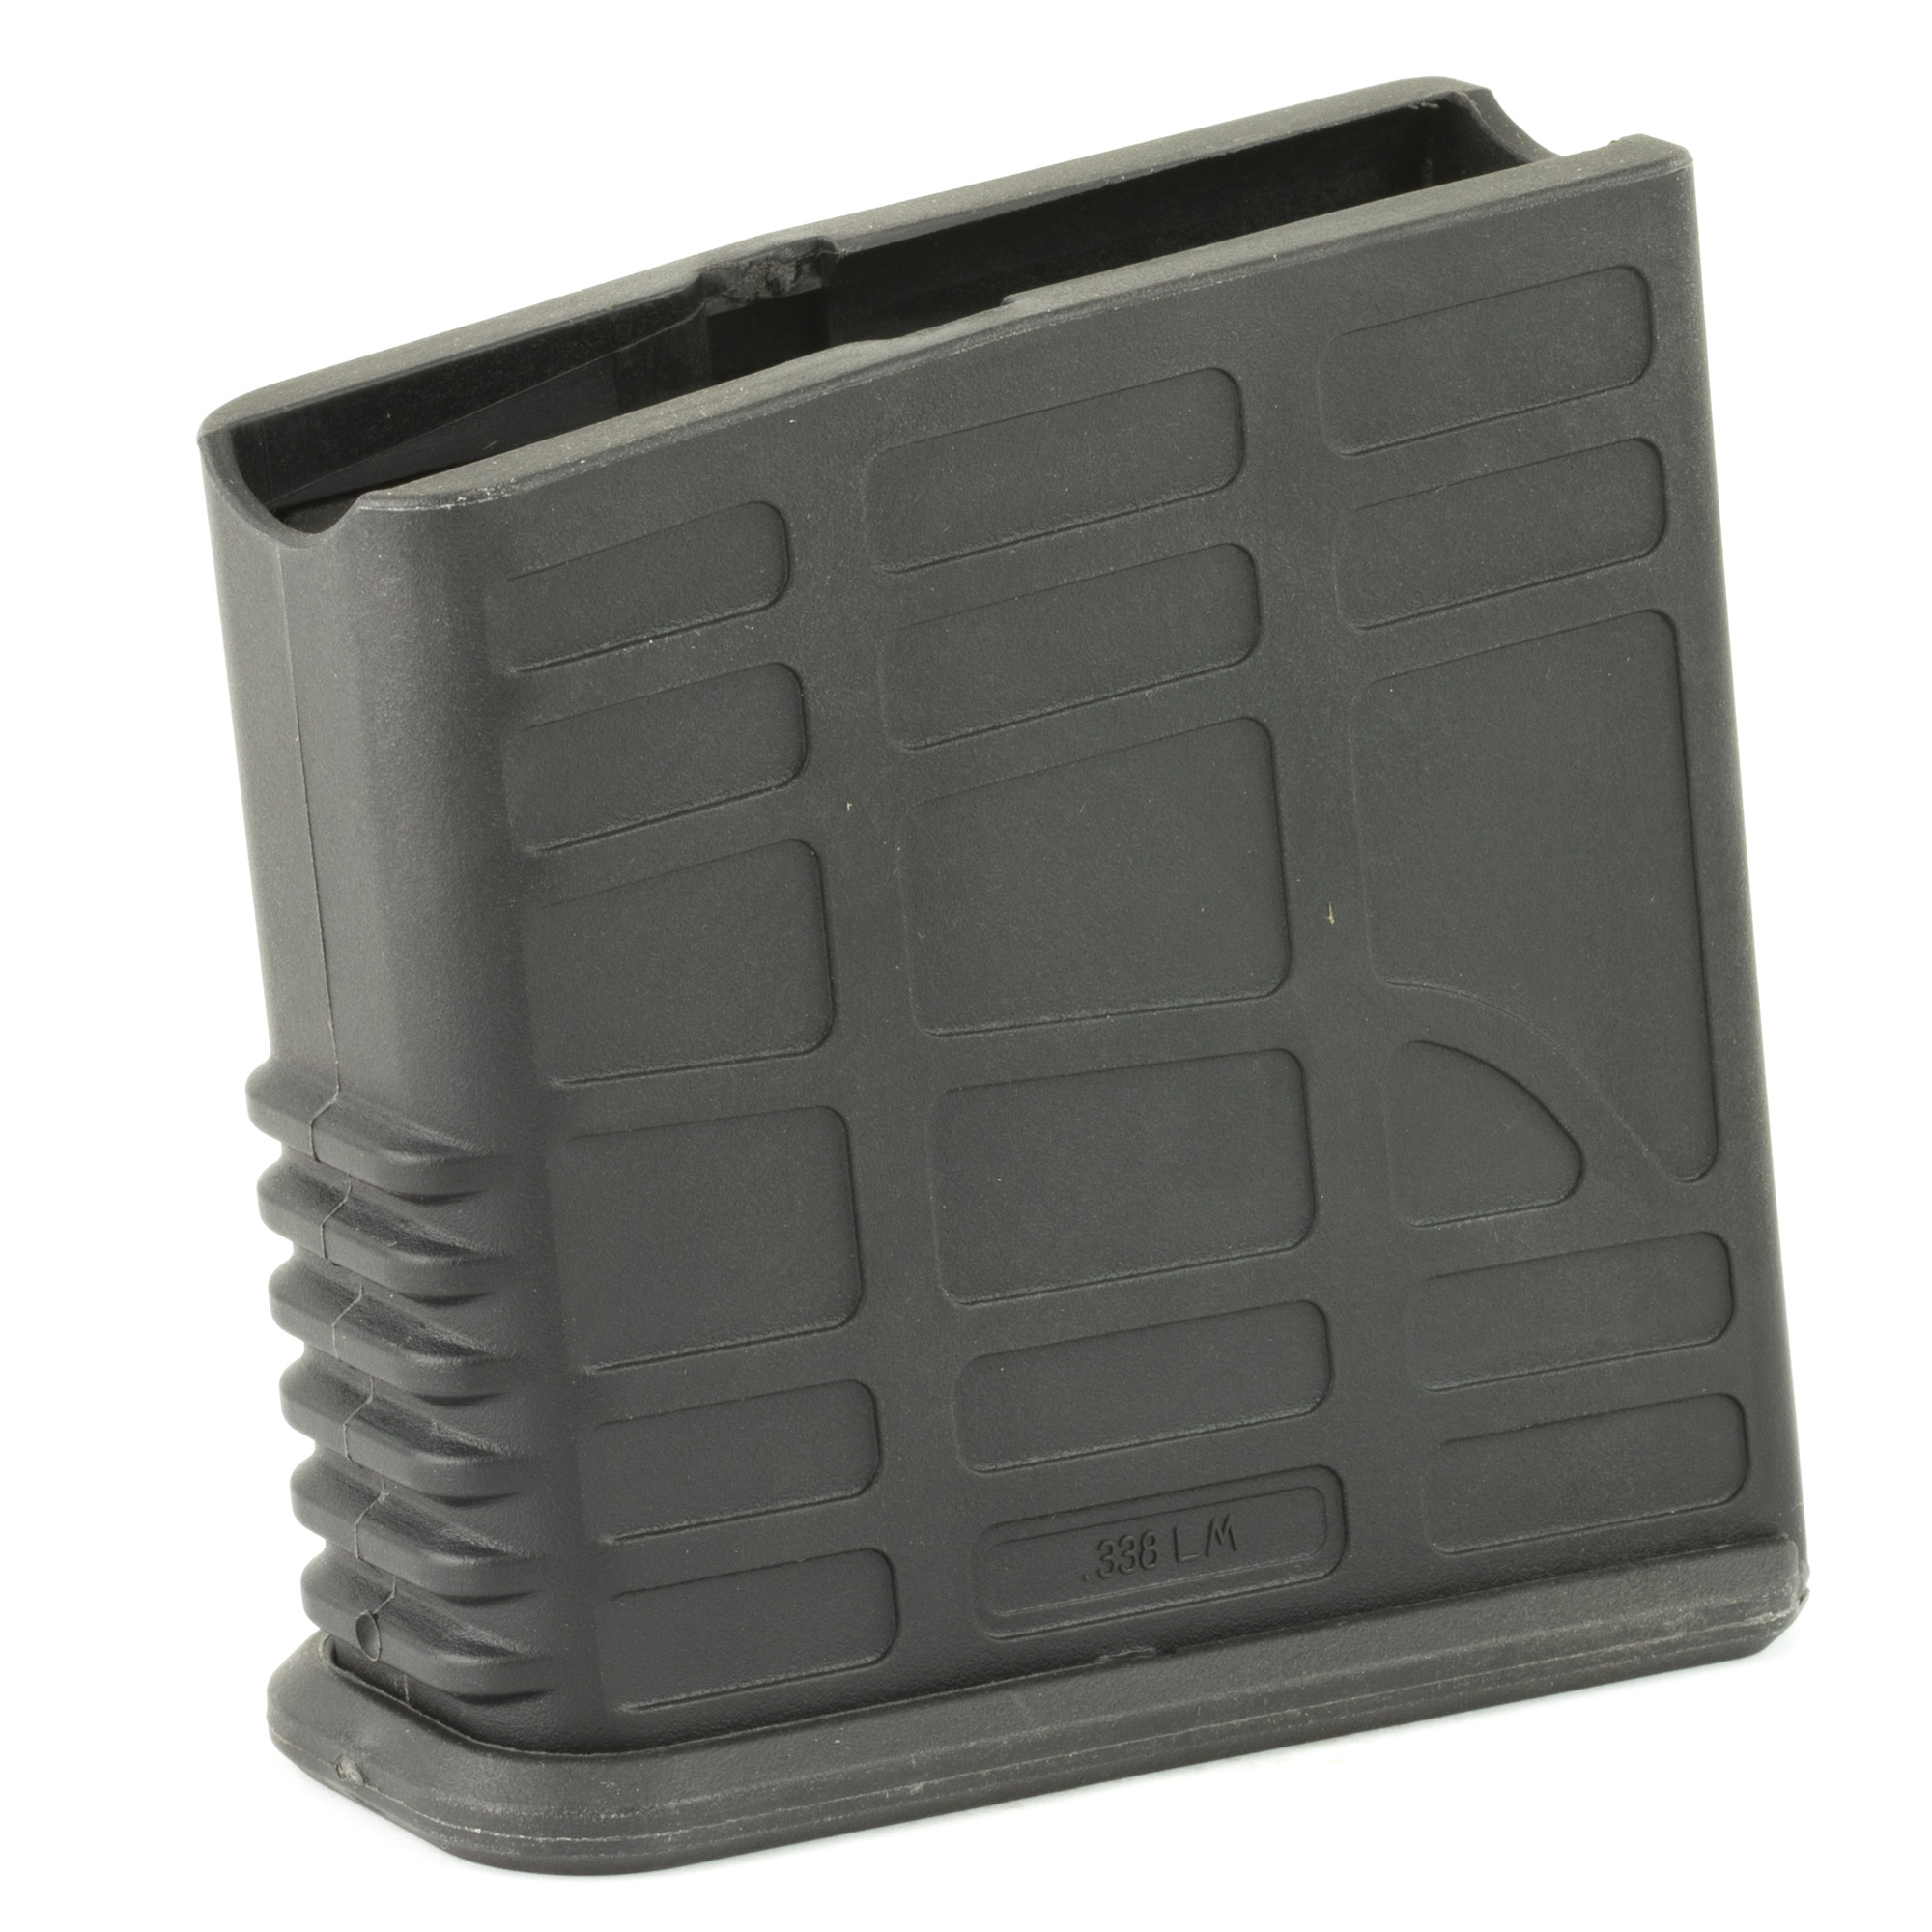 This factory Barrett magazine is manufactured to strict specifications to ensure perfect fit and reliable function in your Barrett rifle.